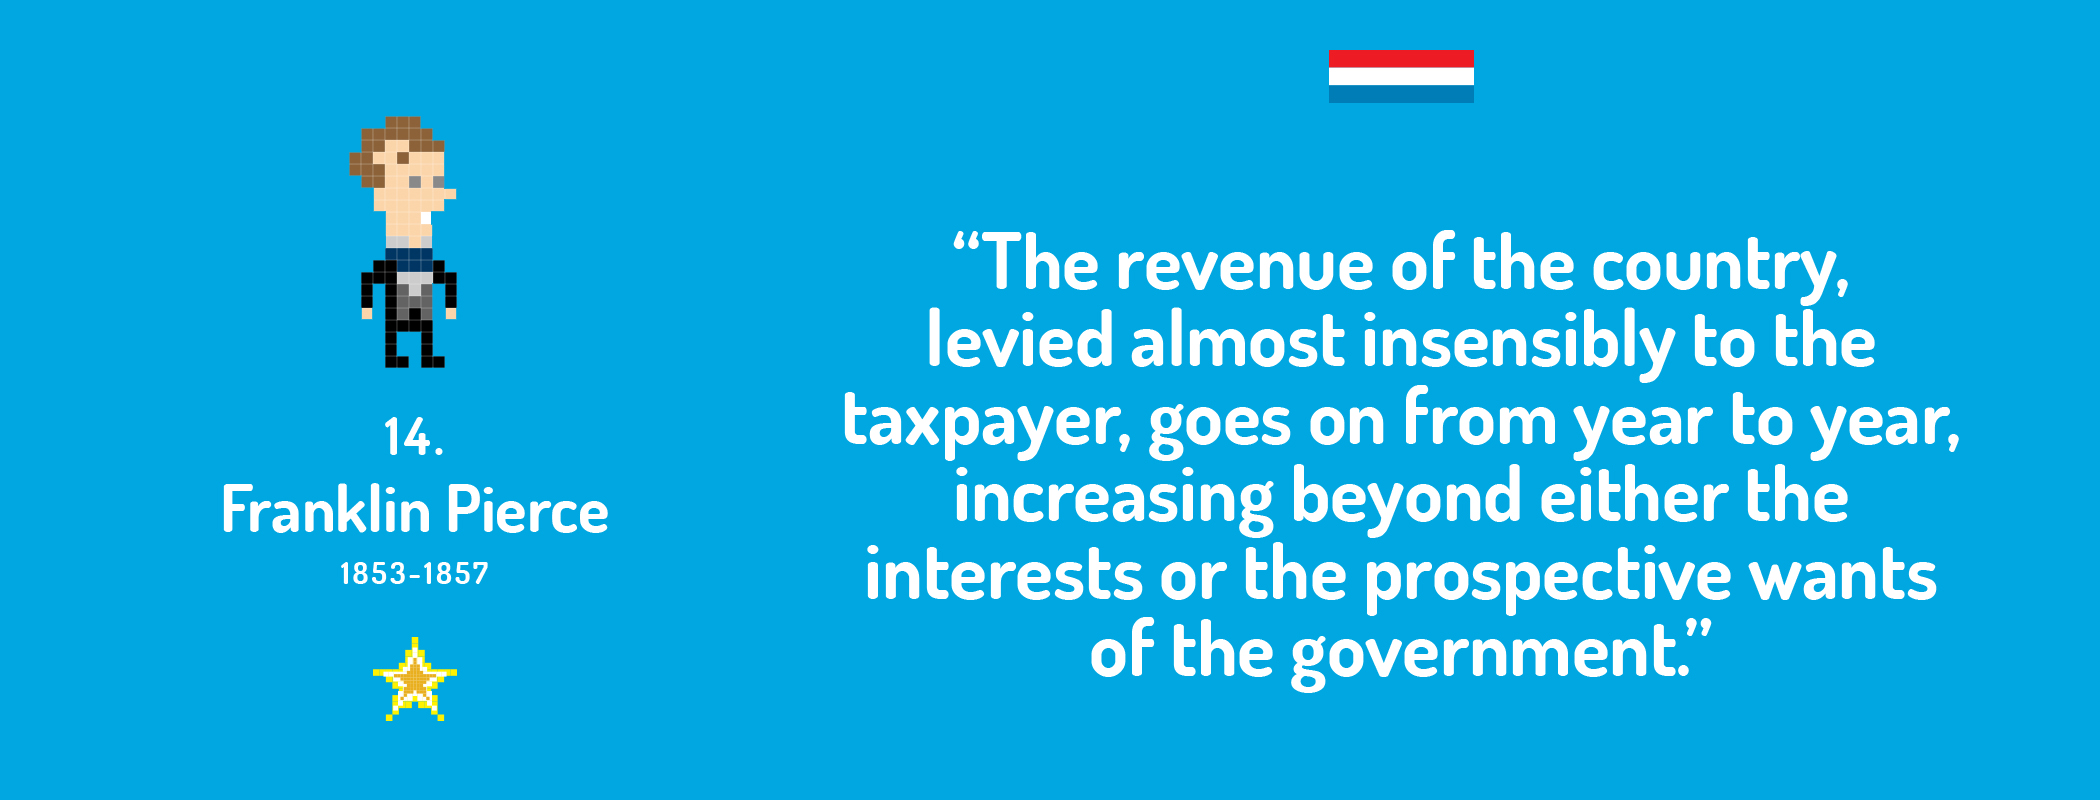 The revenue of the country, levied almost insensibly to the taxpayer, goes on from year to year, increasing beyond either the interests or the prospective wants of the government.